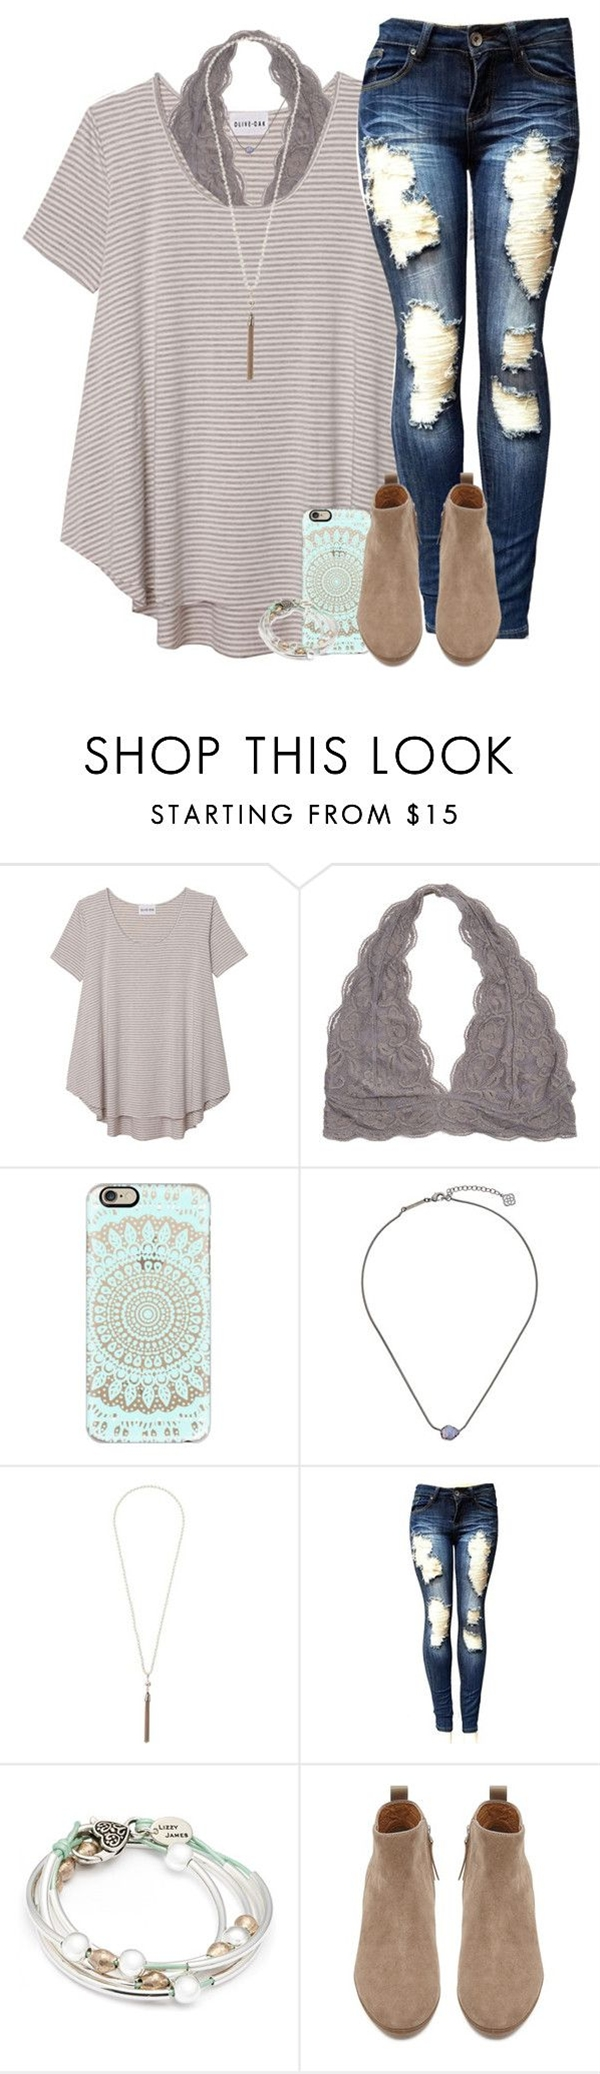 featuring Olive + Oak, Casetify, Kendra Scott, Wallis, Lizzy James and Witchery